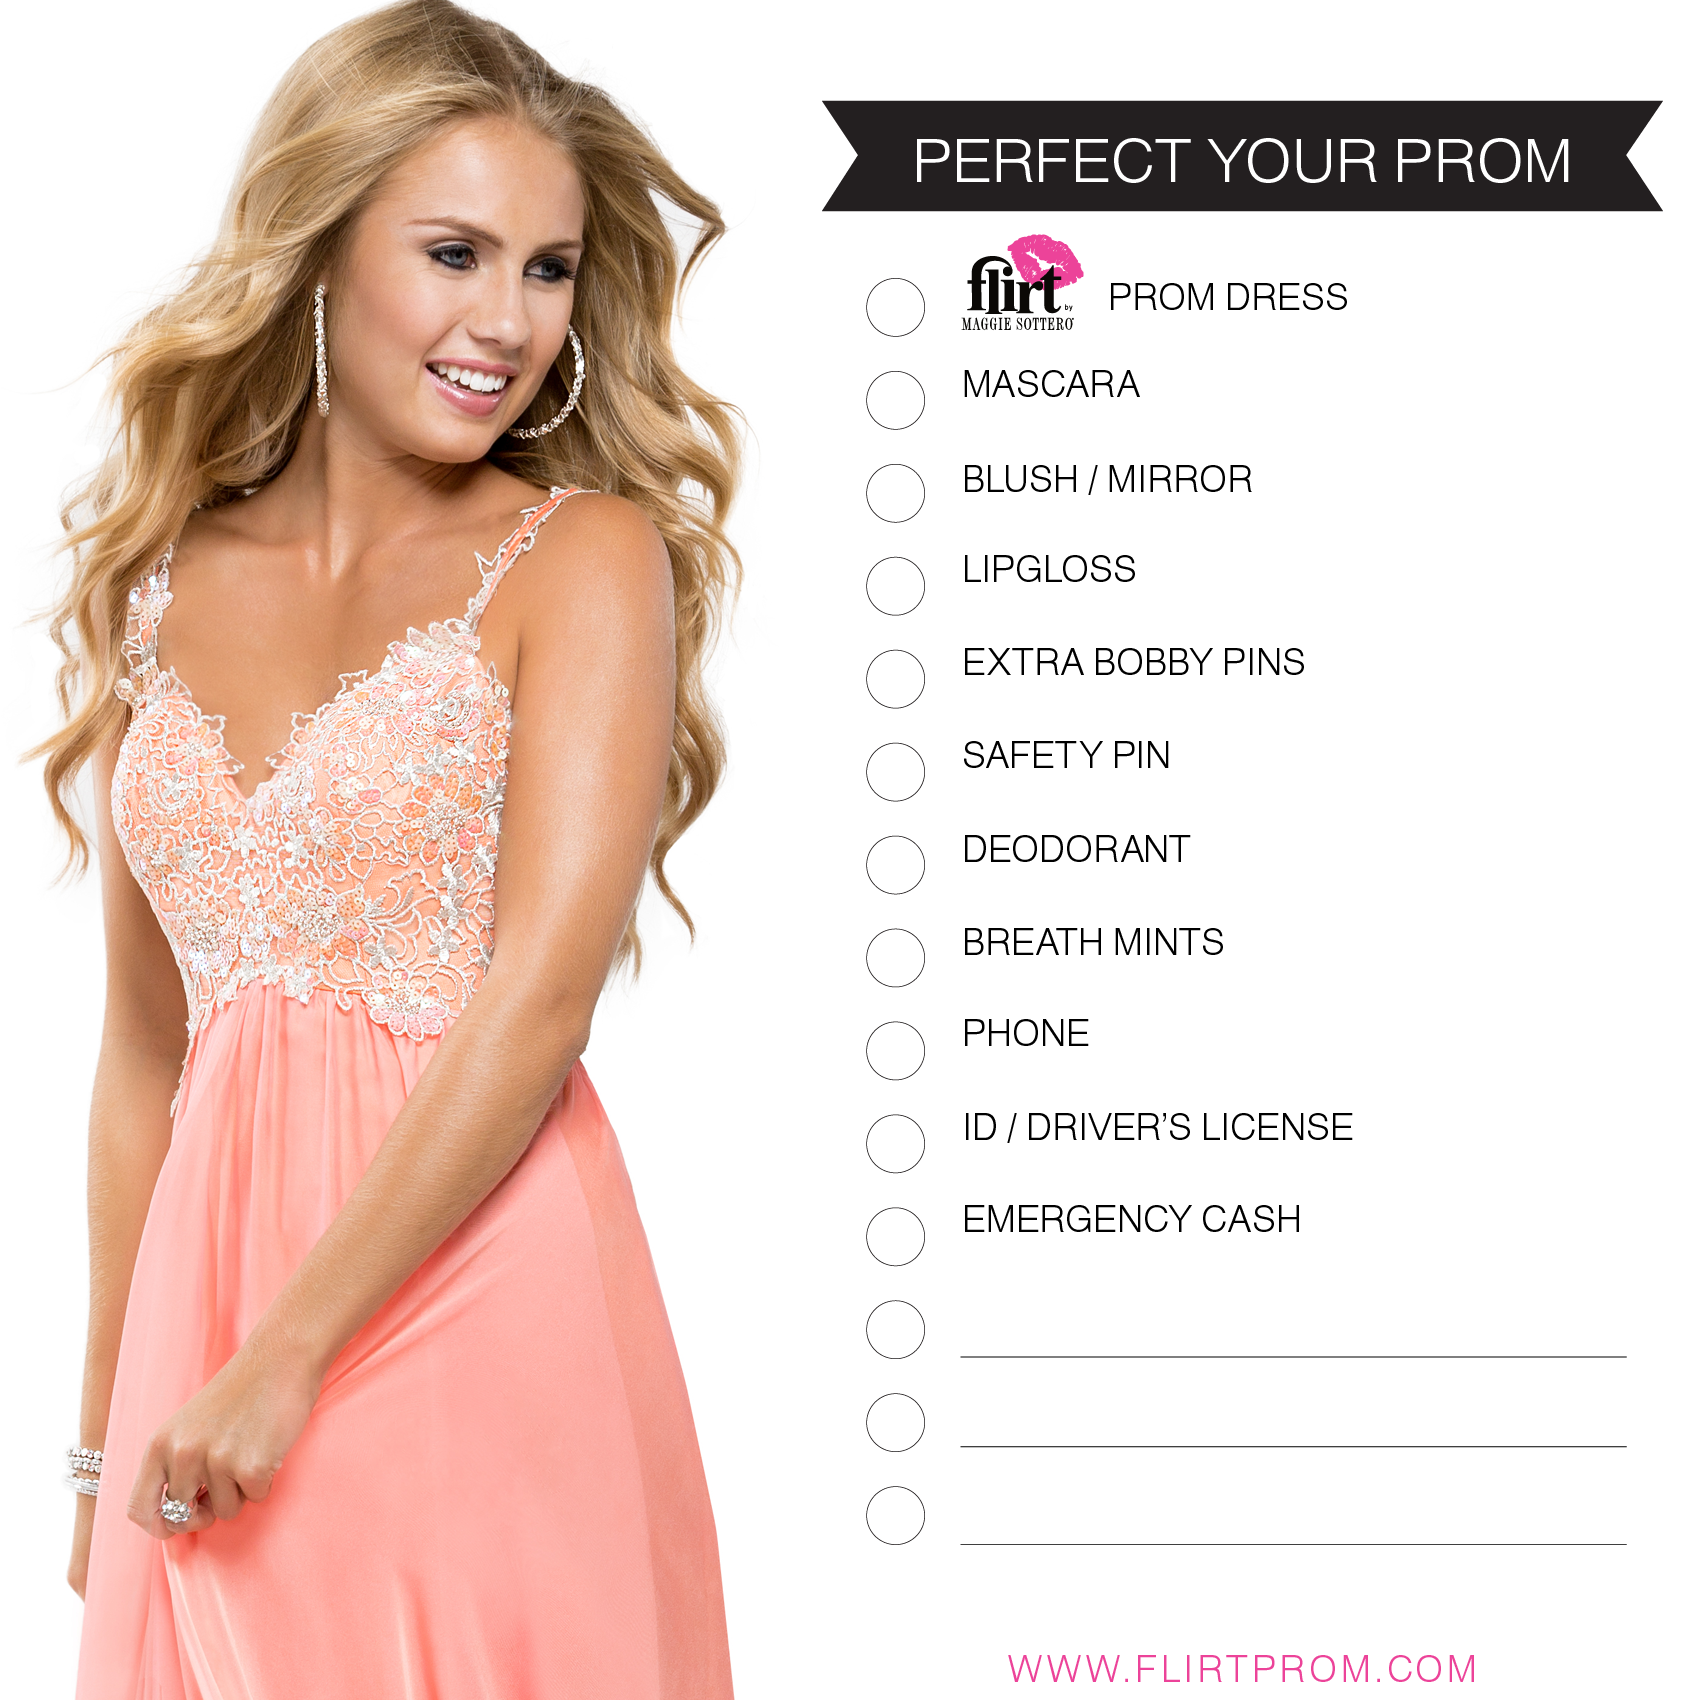 Pin by Maddi Jenkins on Prom | Pinterest | Prom checklist, Prom ...